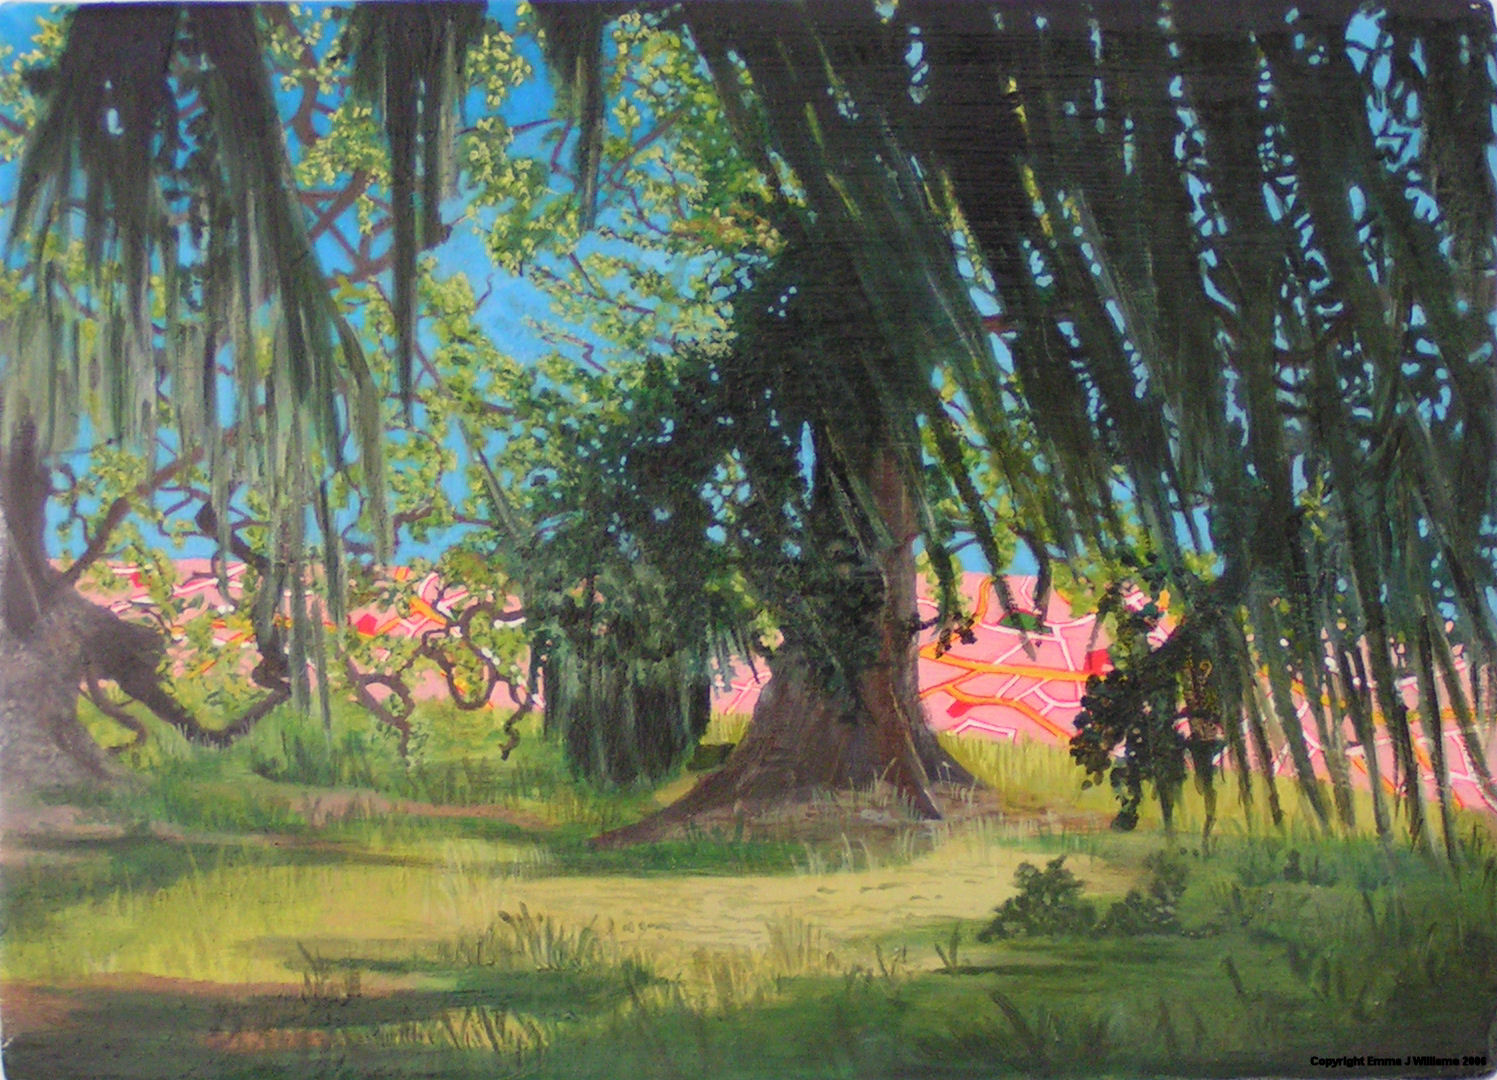 Emma J Williams 'Pink City through trees' 2005 oil on canvas